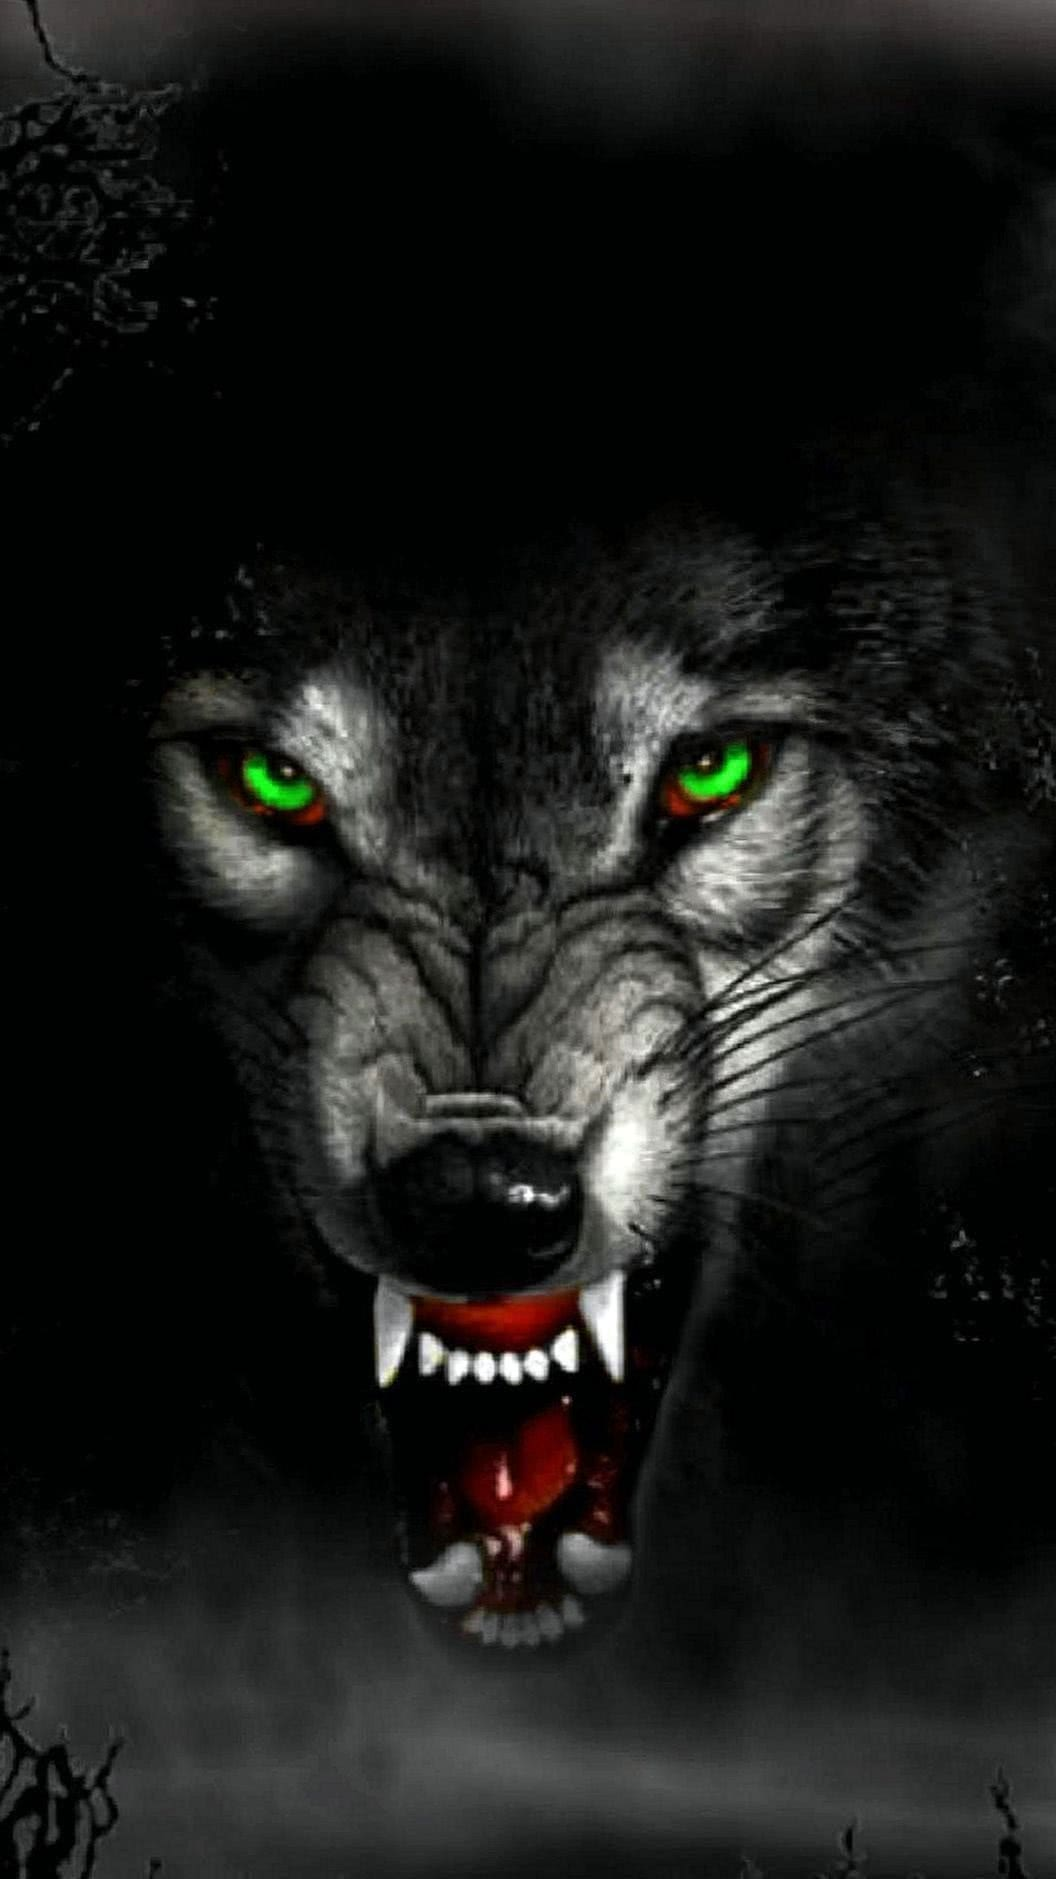 Angry Wolf HD Wallpaper For Mobile